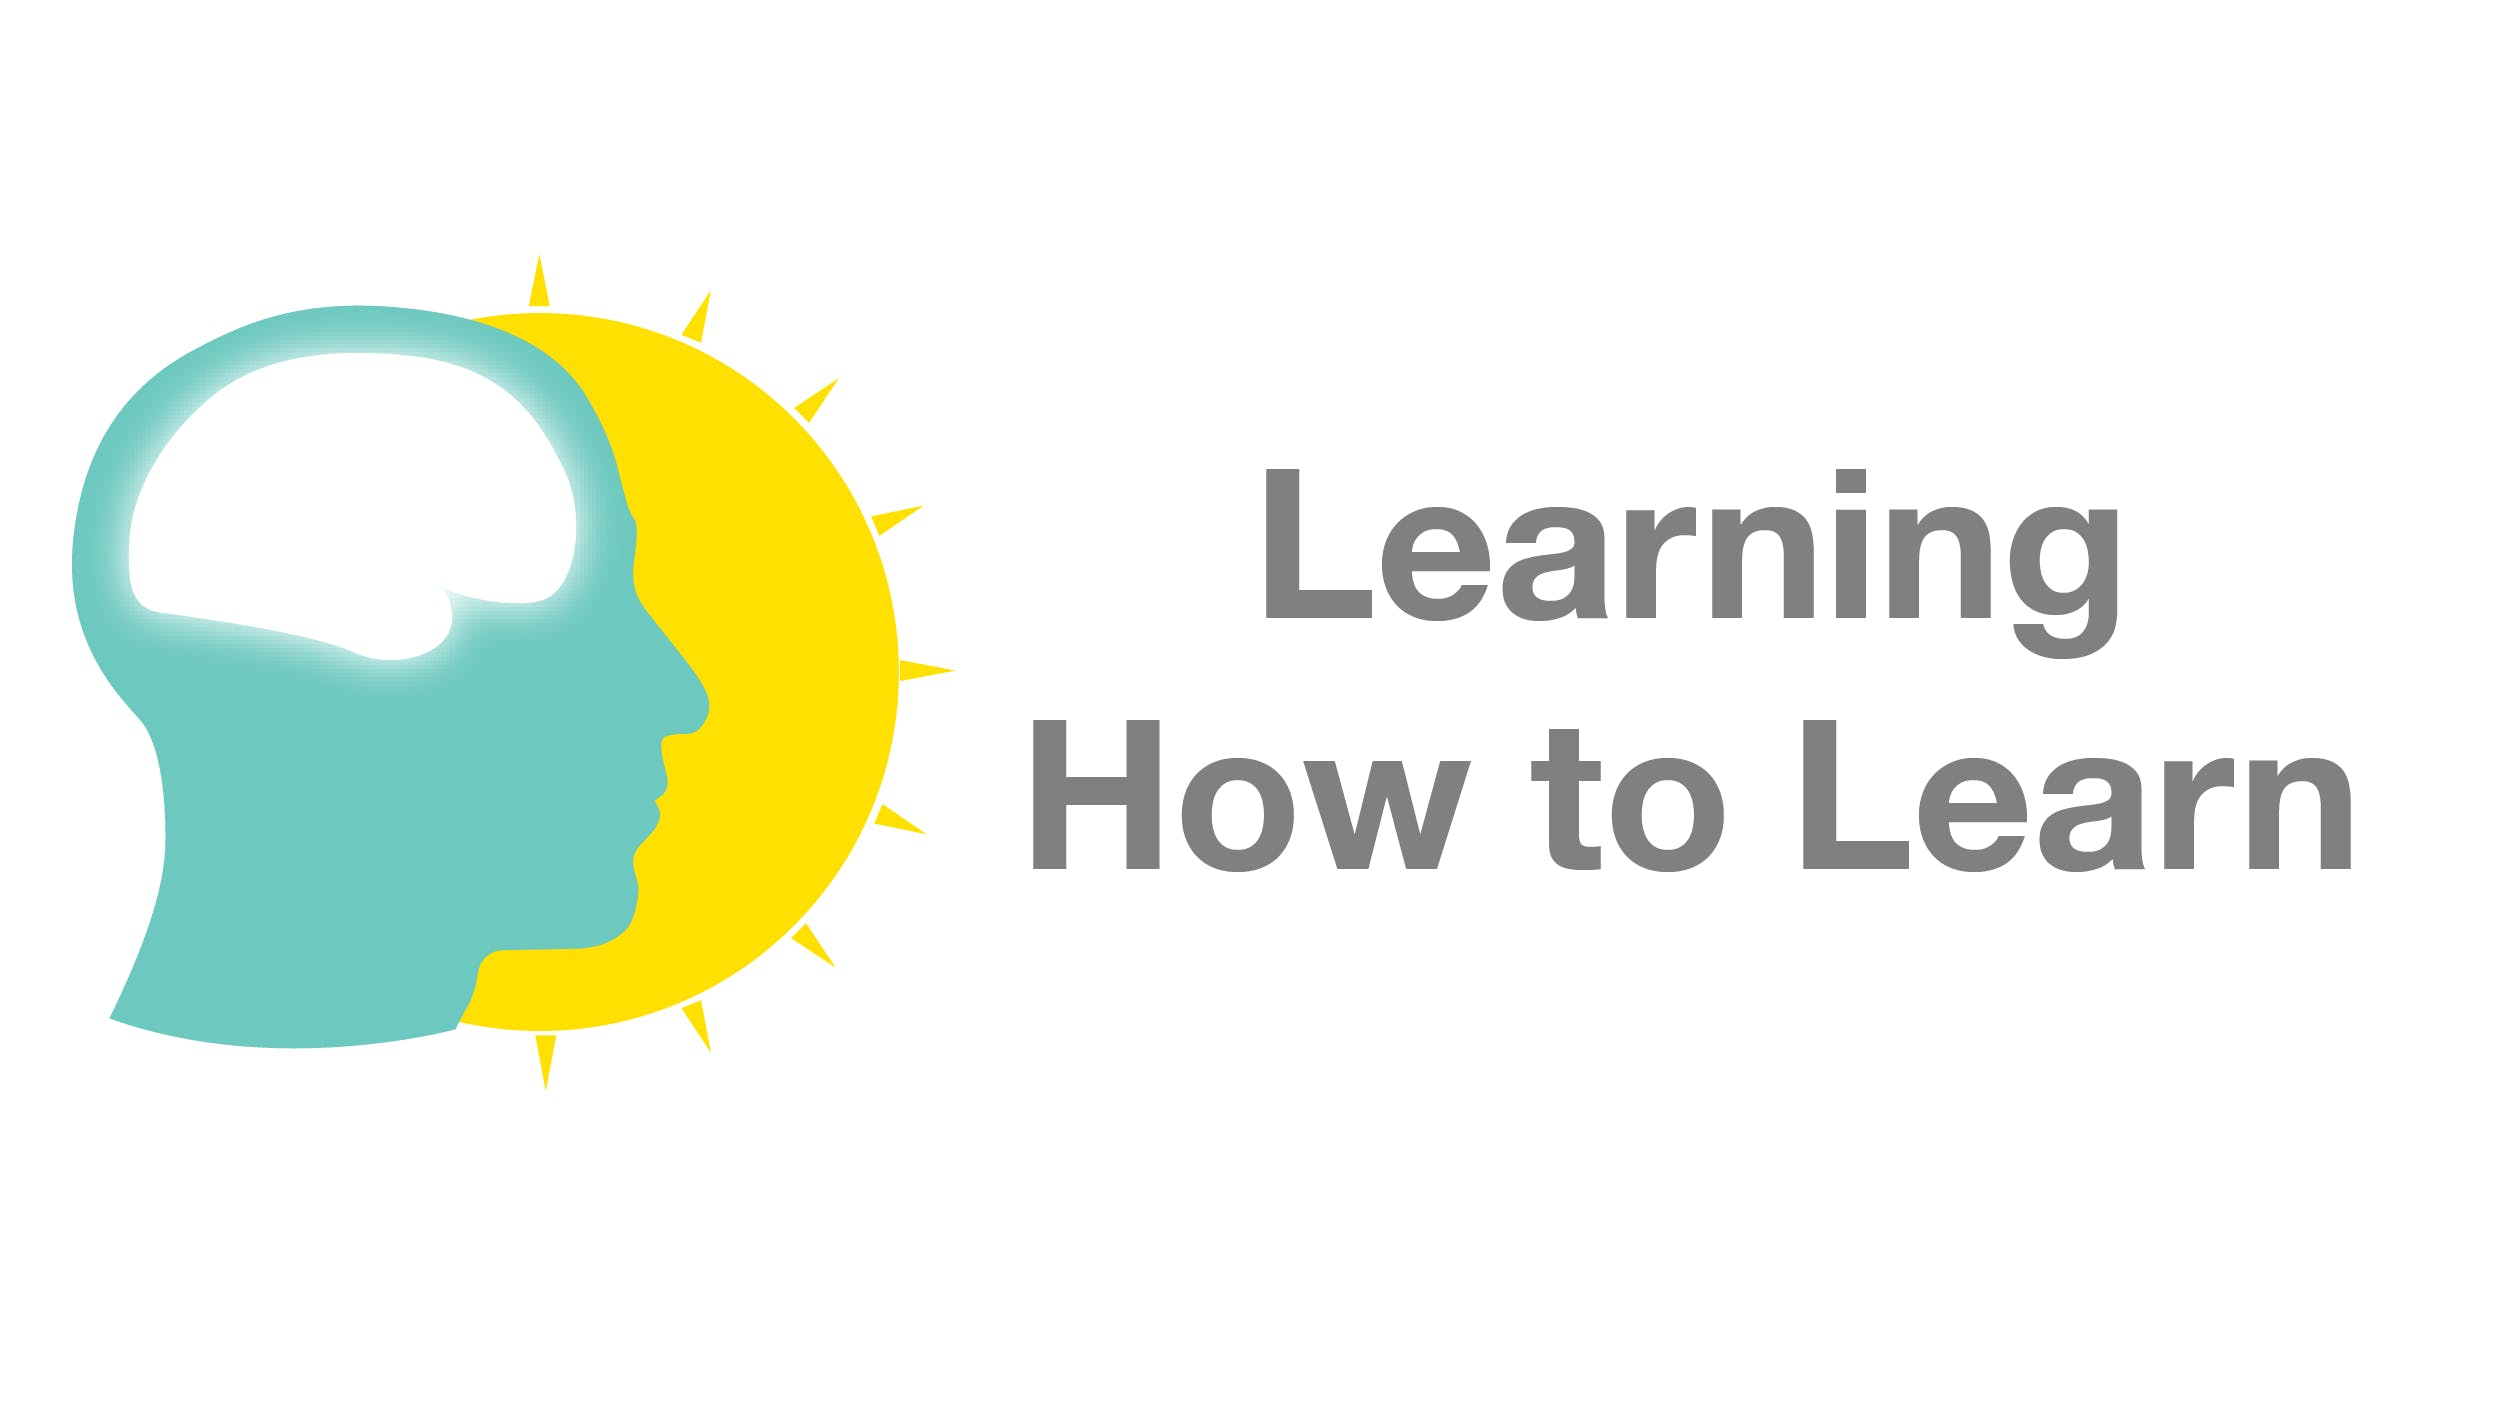 Learning How to Learn: Powerful mental tools to help you master tough subjects (Coursera)